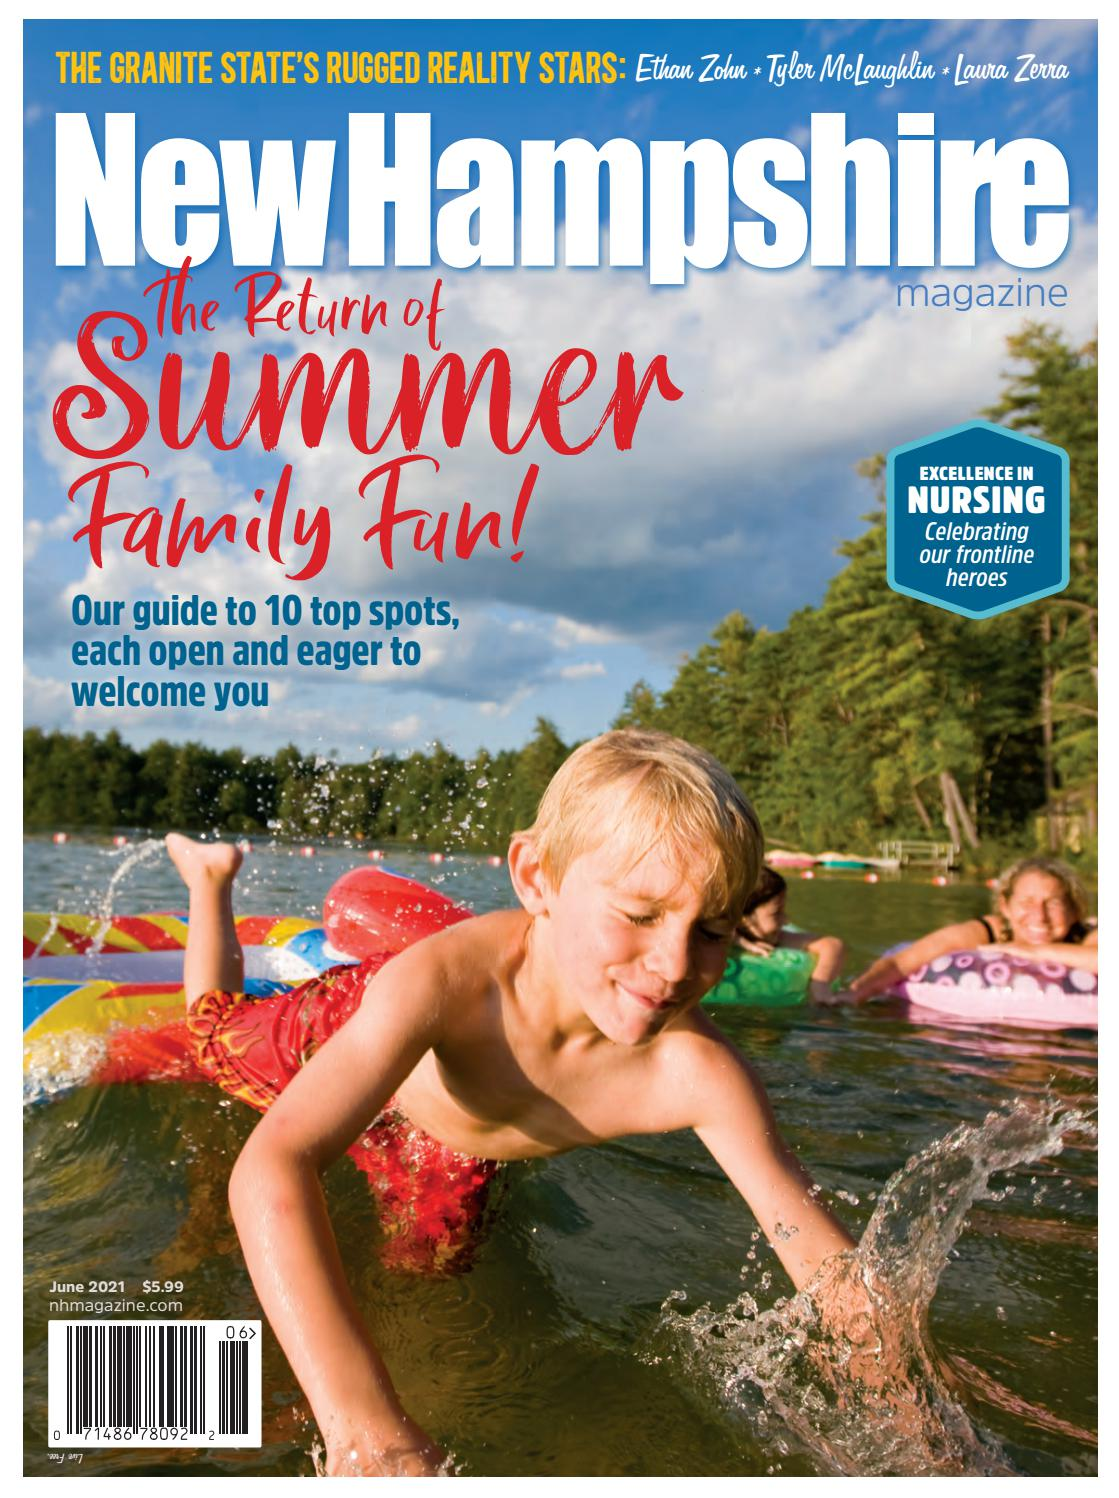 New Hampshire Magazine June 8 by McLean Communications   issuu